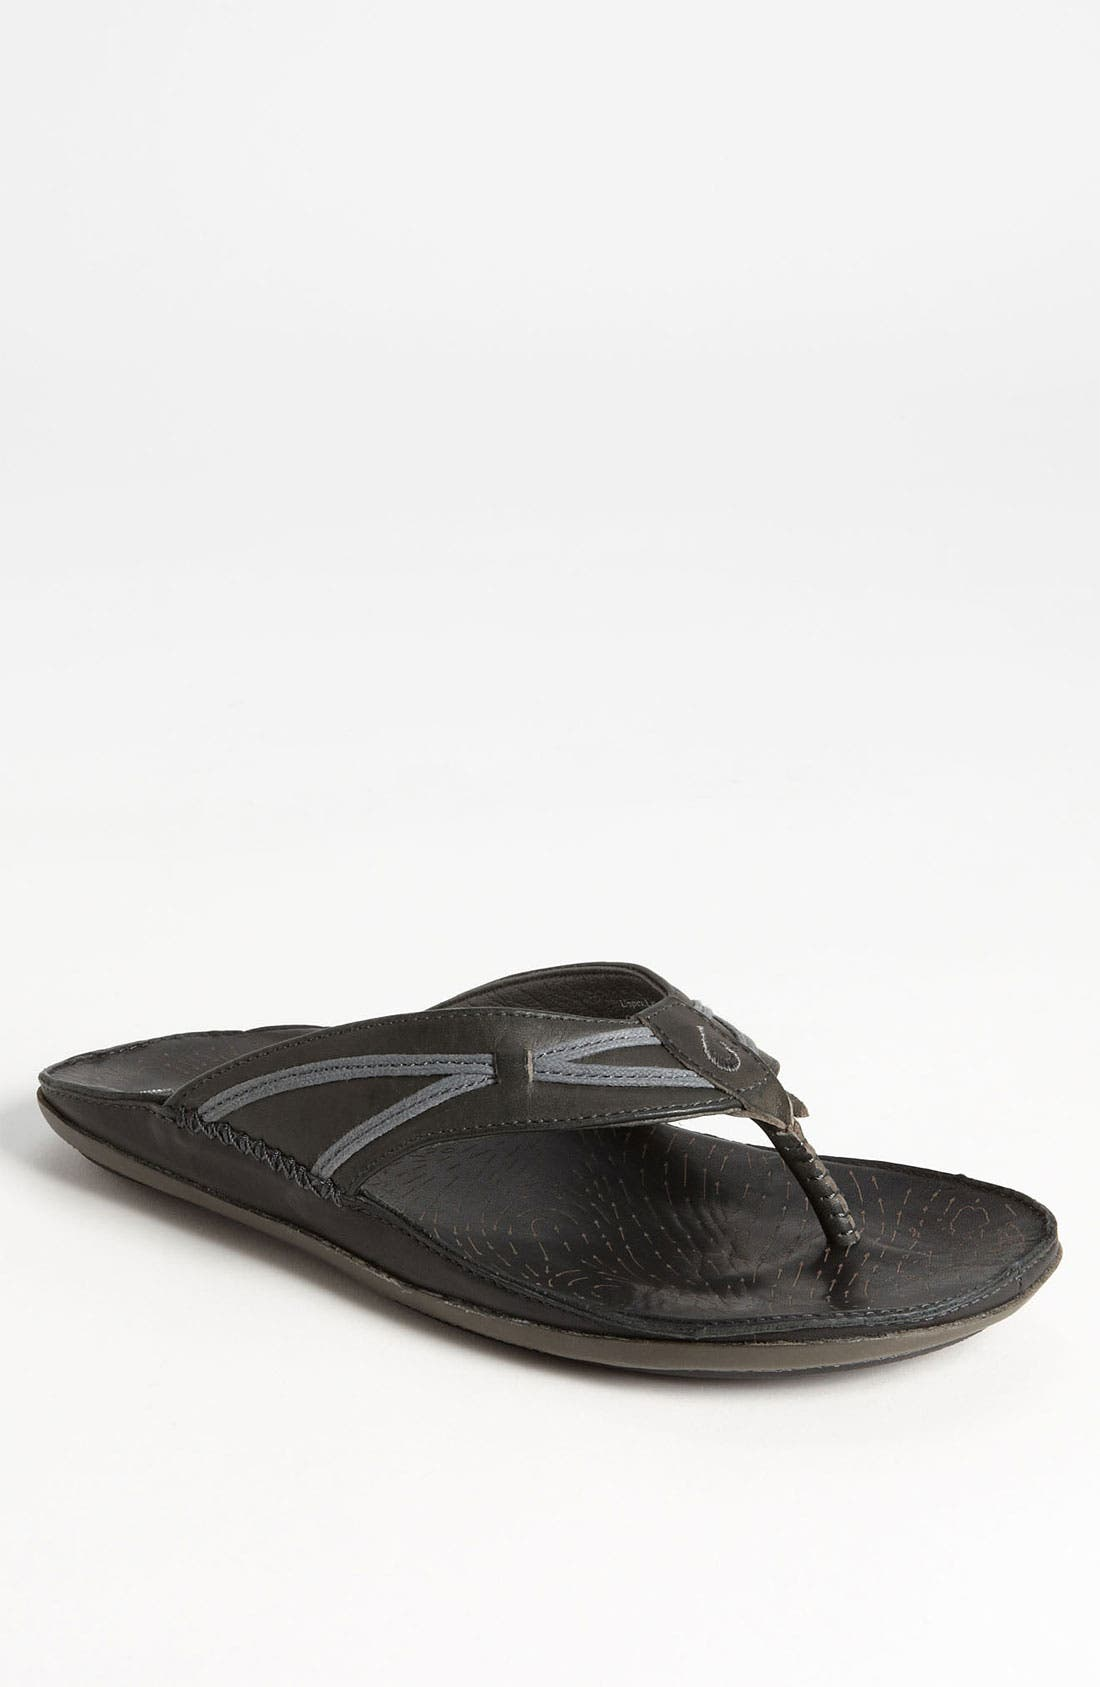 Alternate Image 1 Selected - OluKai 'Huakai' Flip Flop (Men)